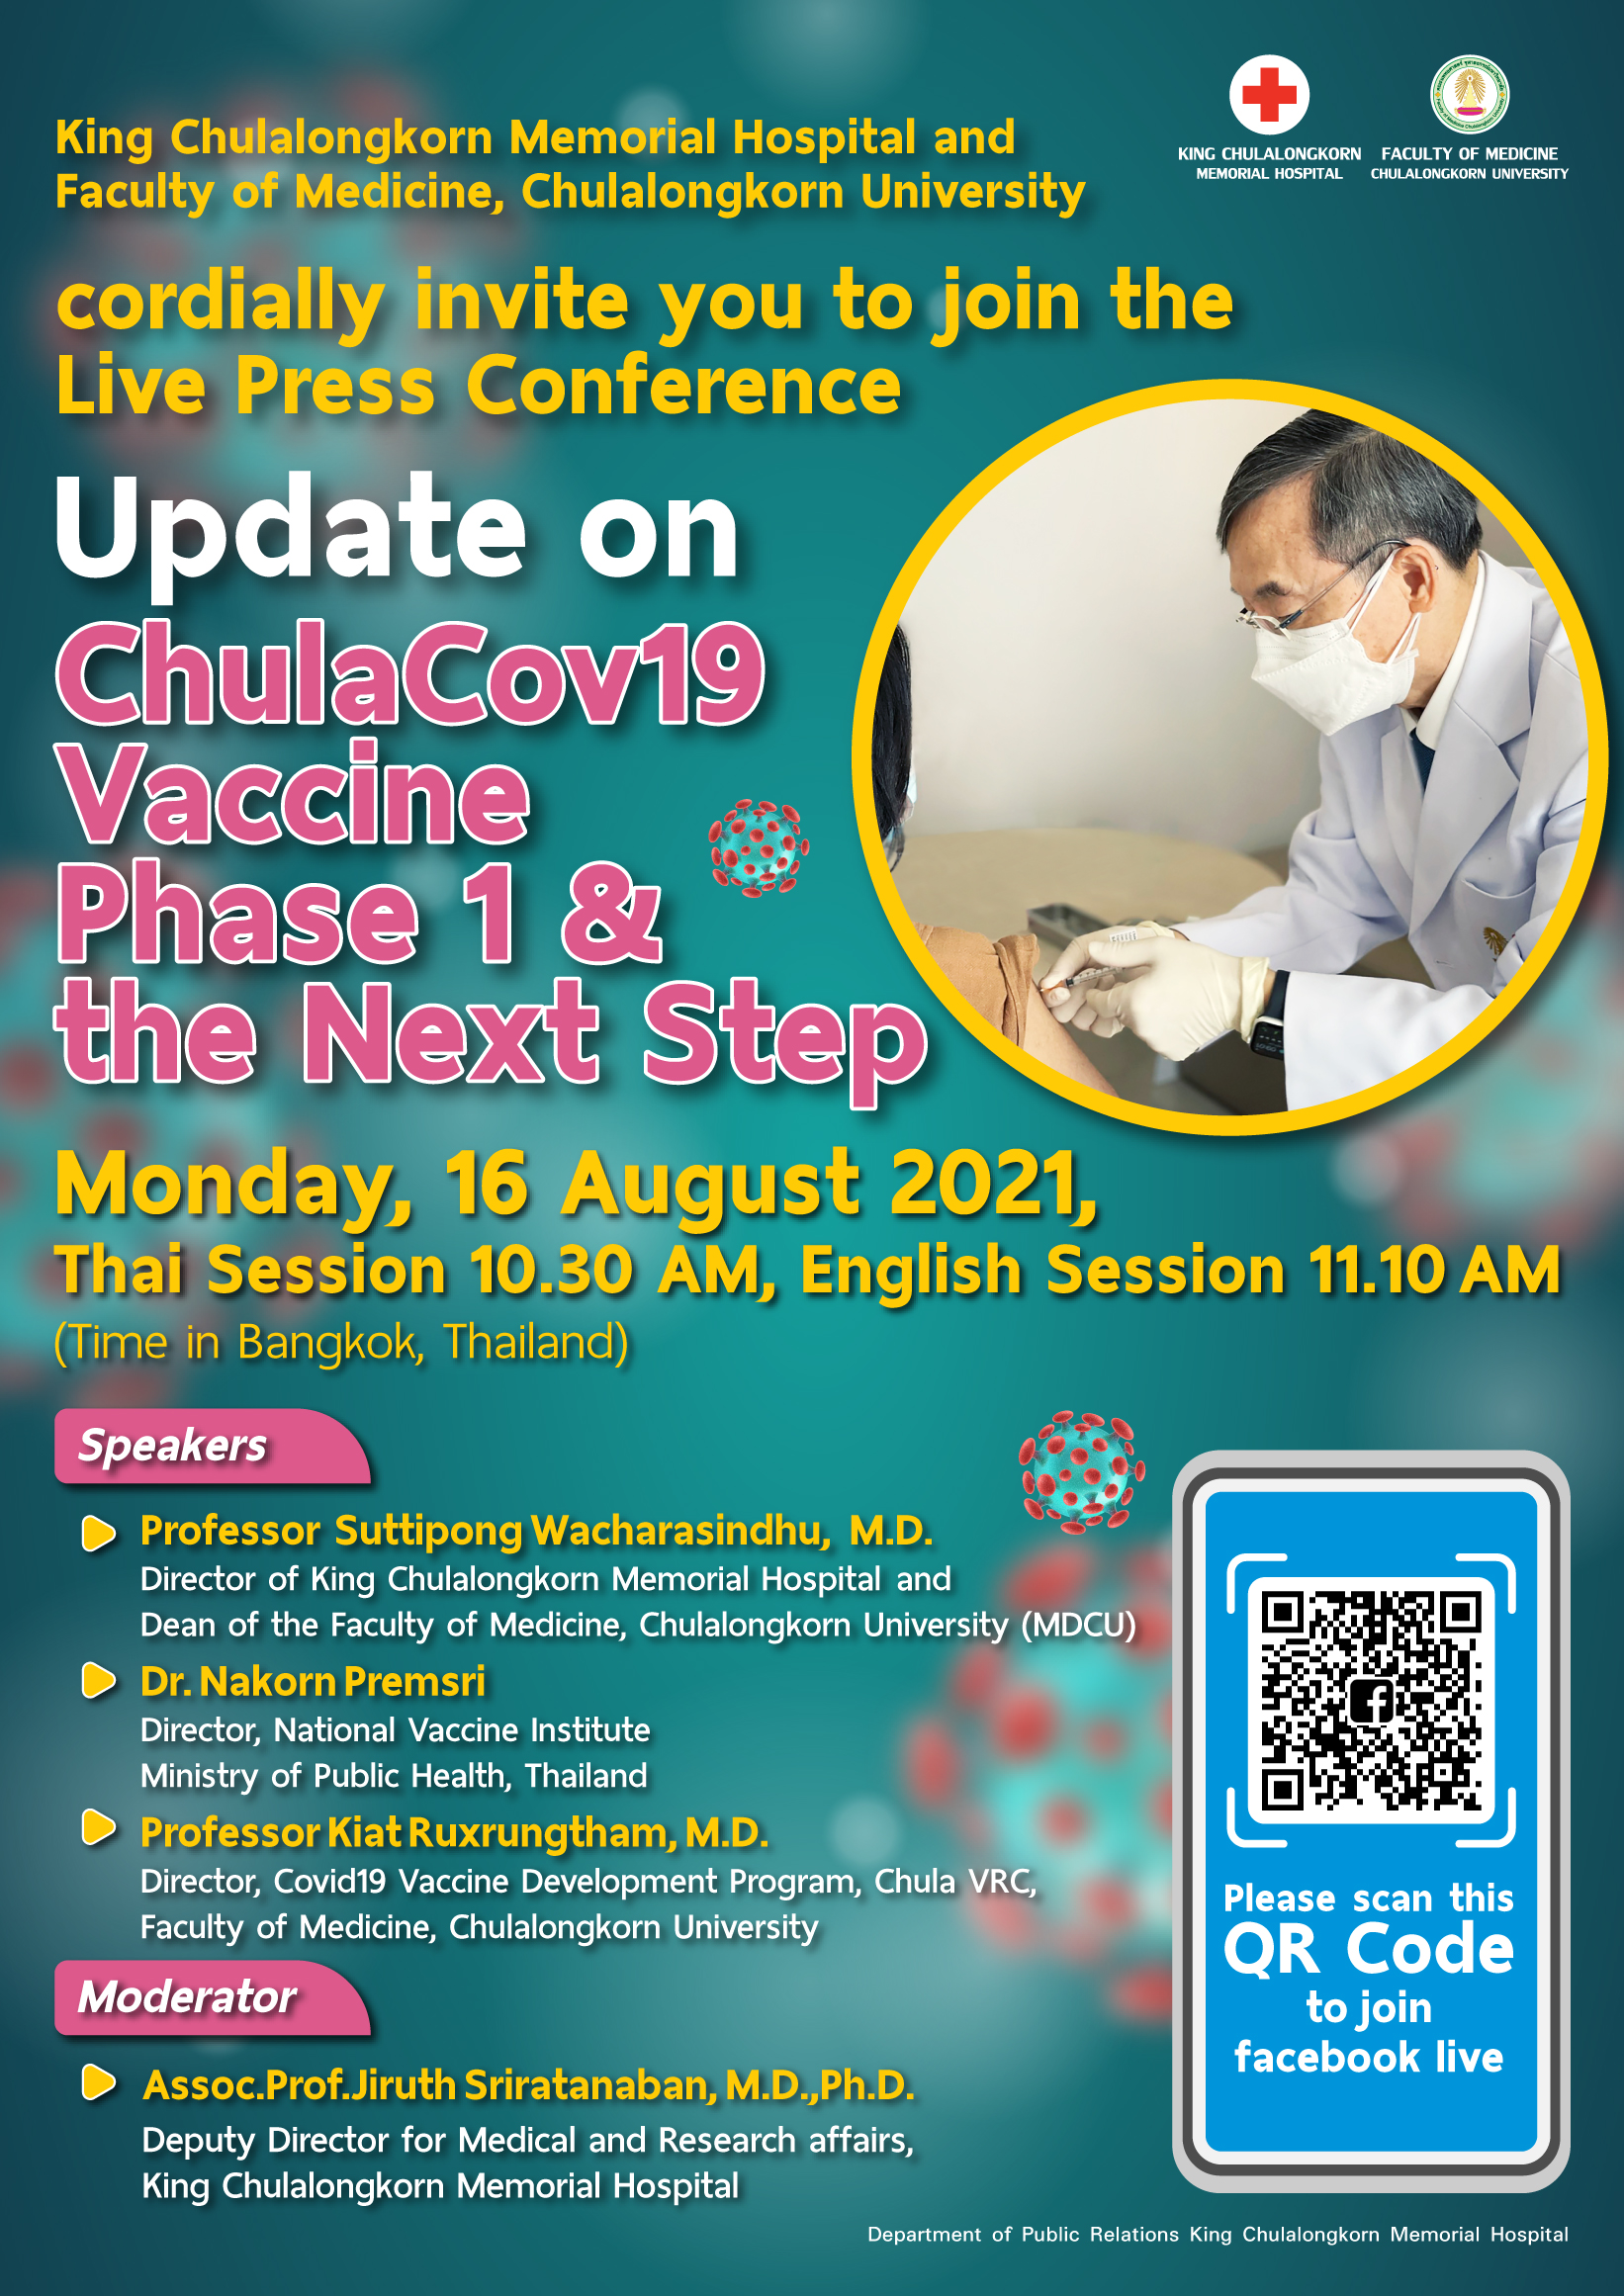 Update on ChulaCov19 Vaccine Phase 1 & the Next Step